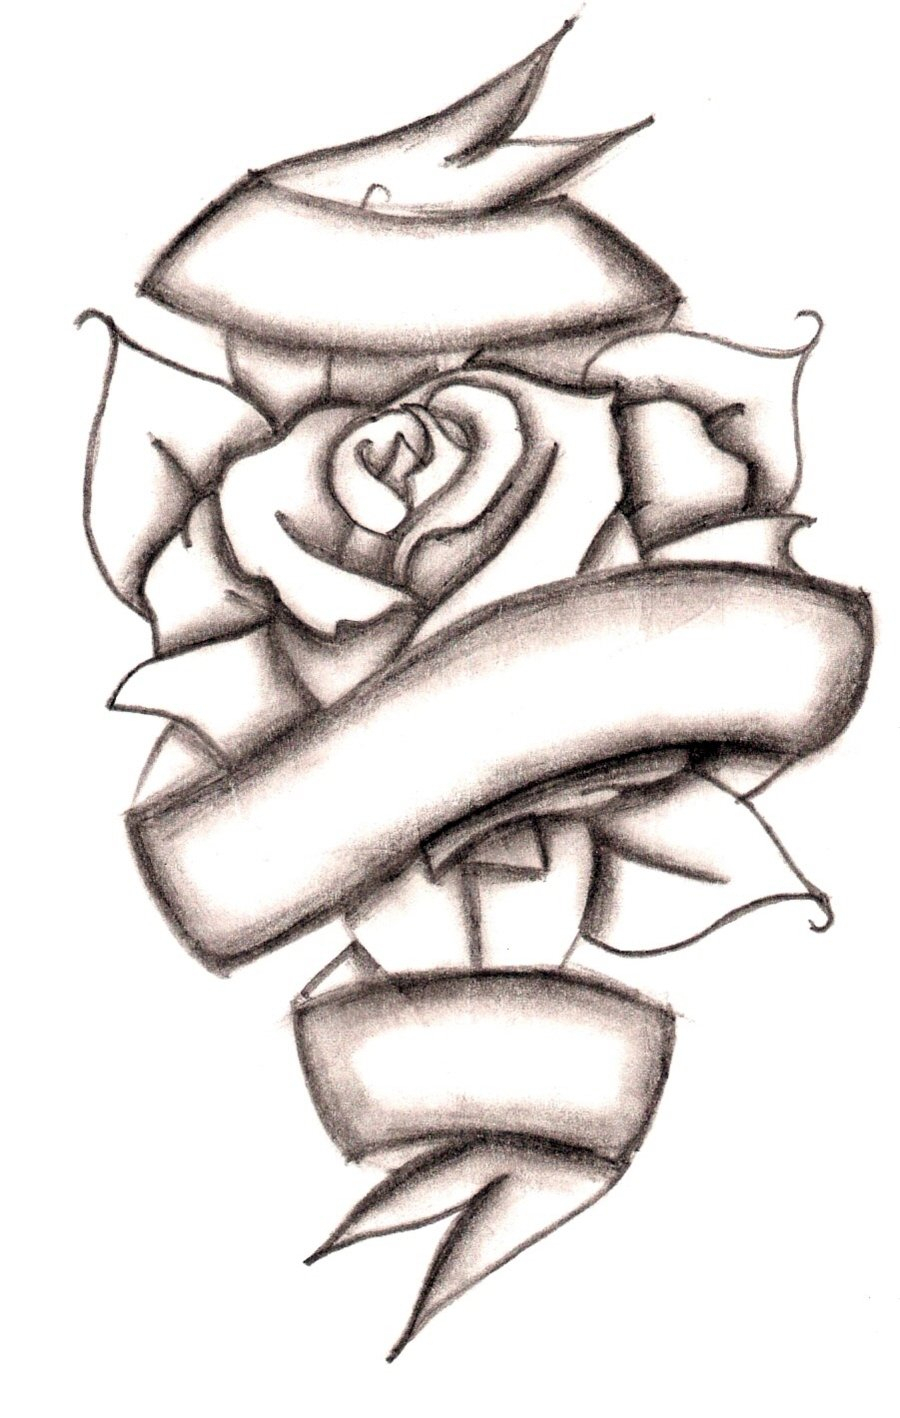 900x1418 Cross Drawings With Roses Drawings Of Crosses With Flowers Free